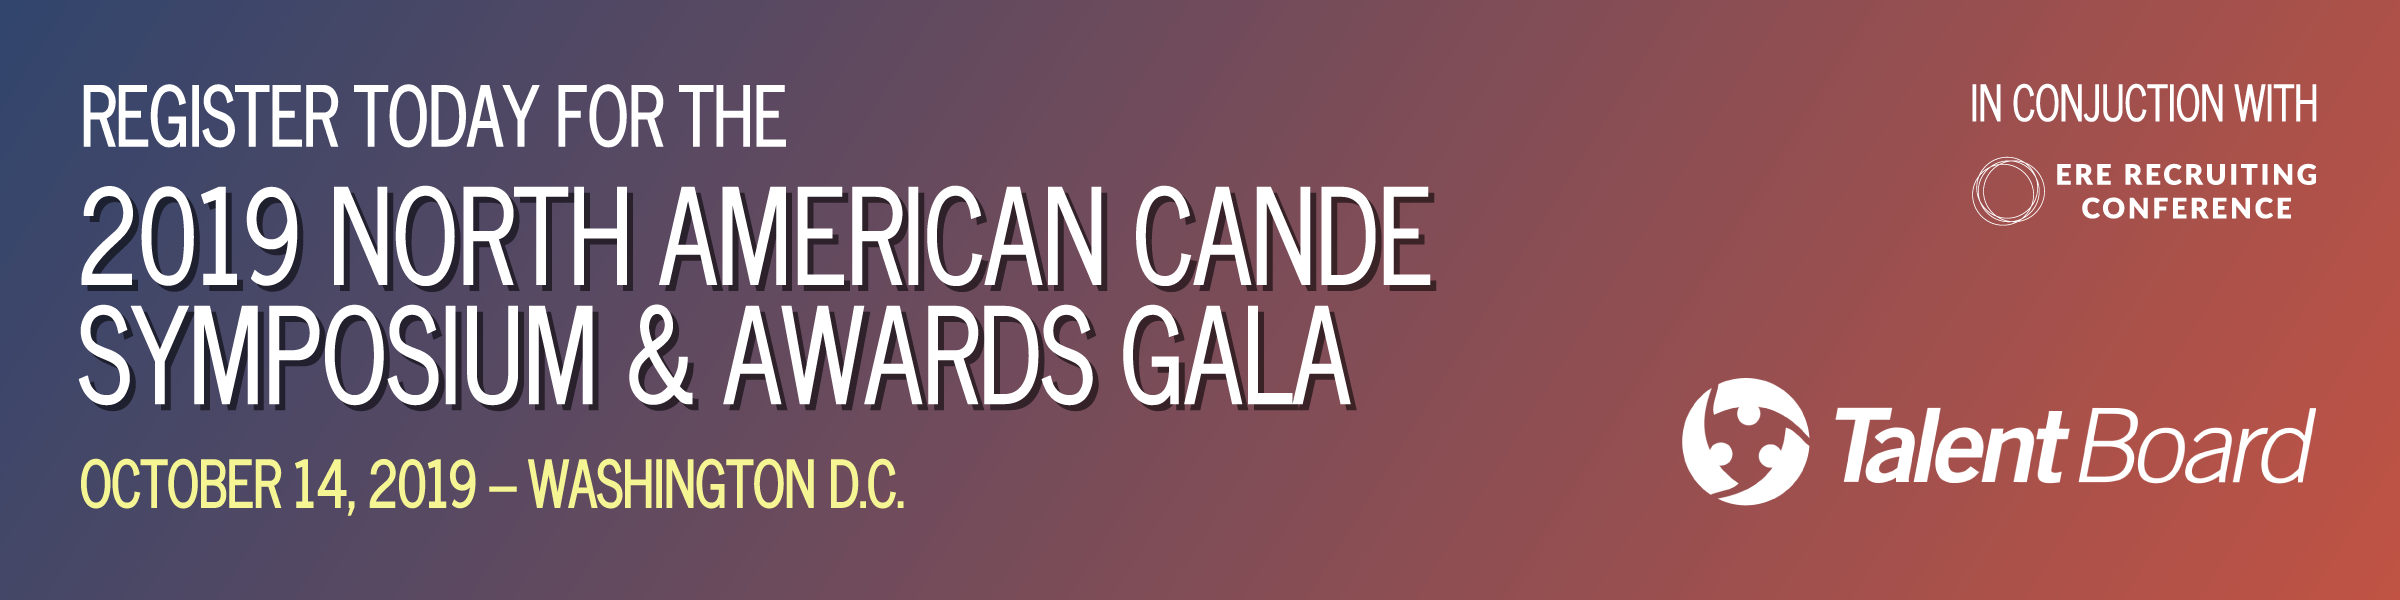 TalentBoard 2019 North American Cande Symposium & Awards Gala graphic